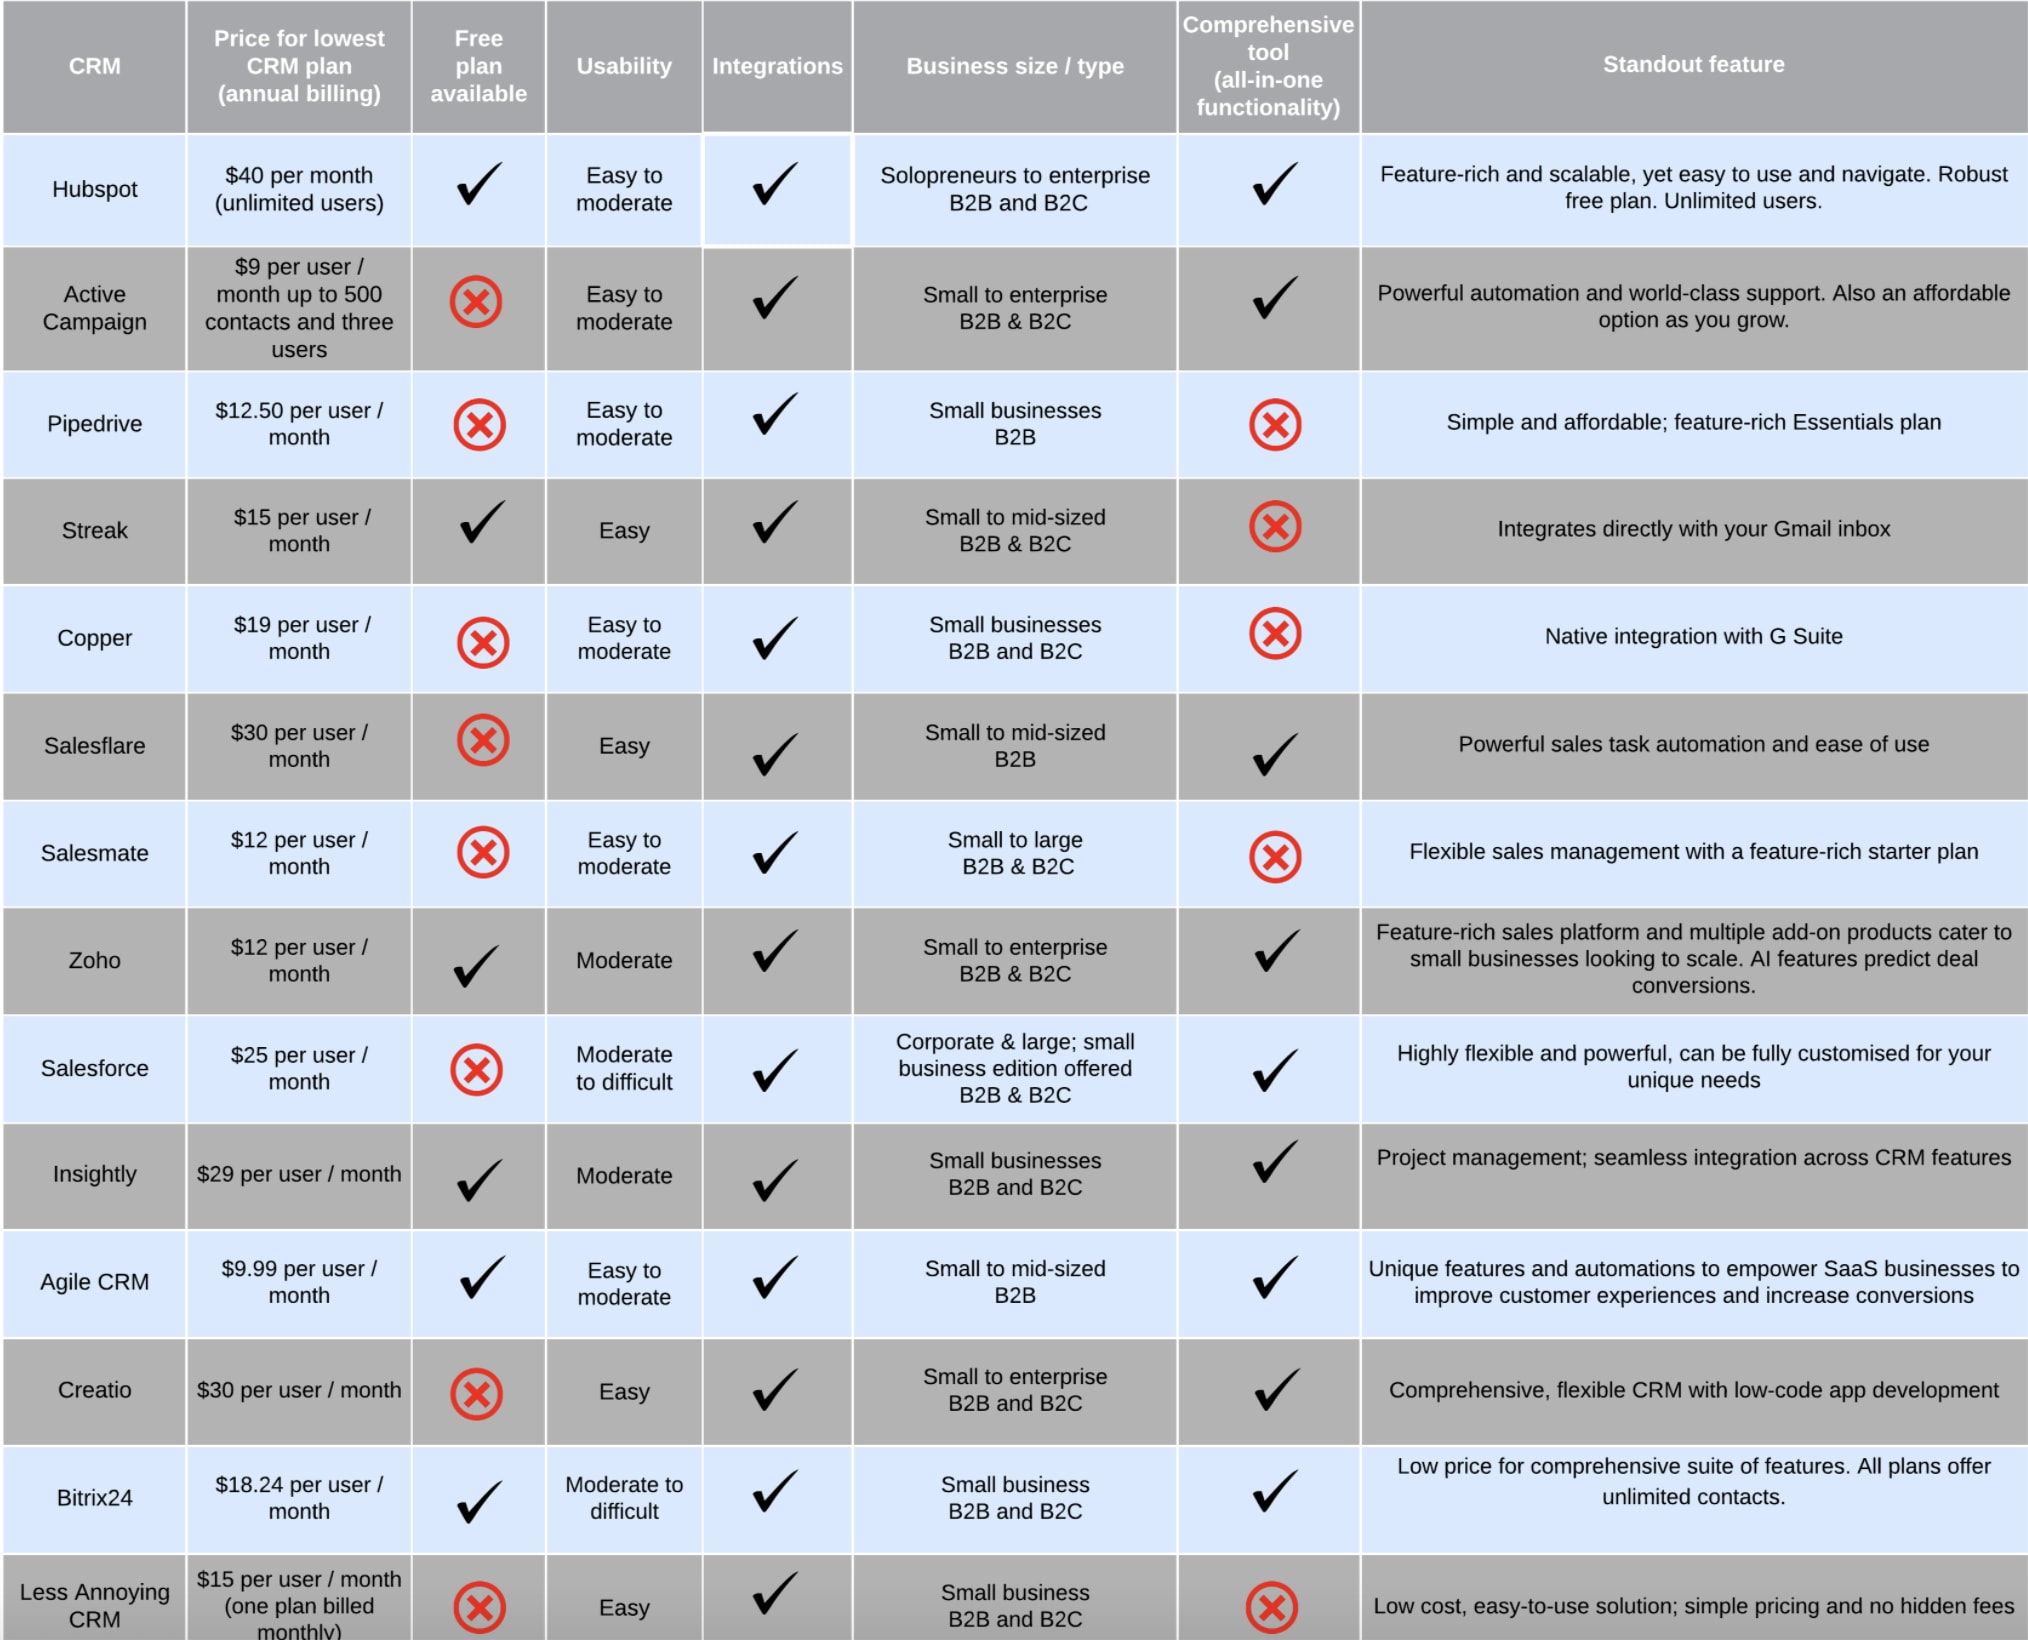 CRM Software for Small Business: Detailed Breakdown & Comparison Chart